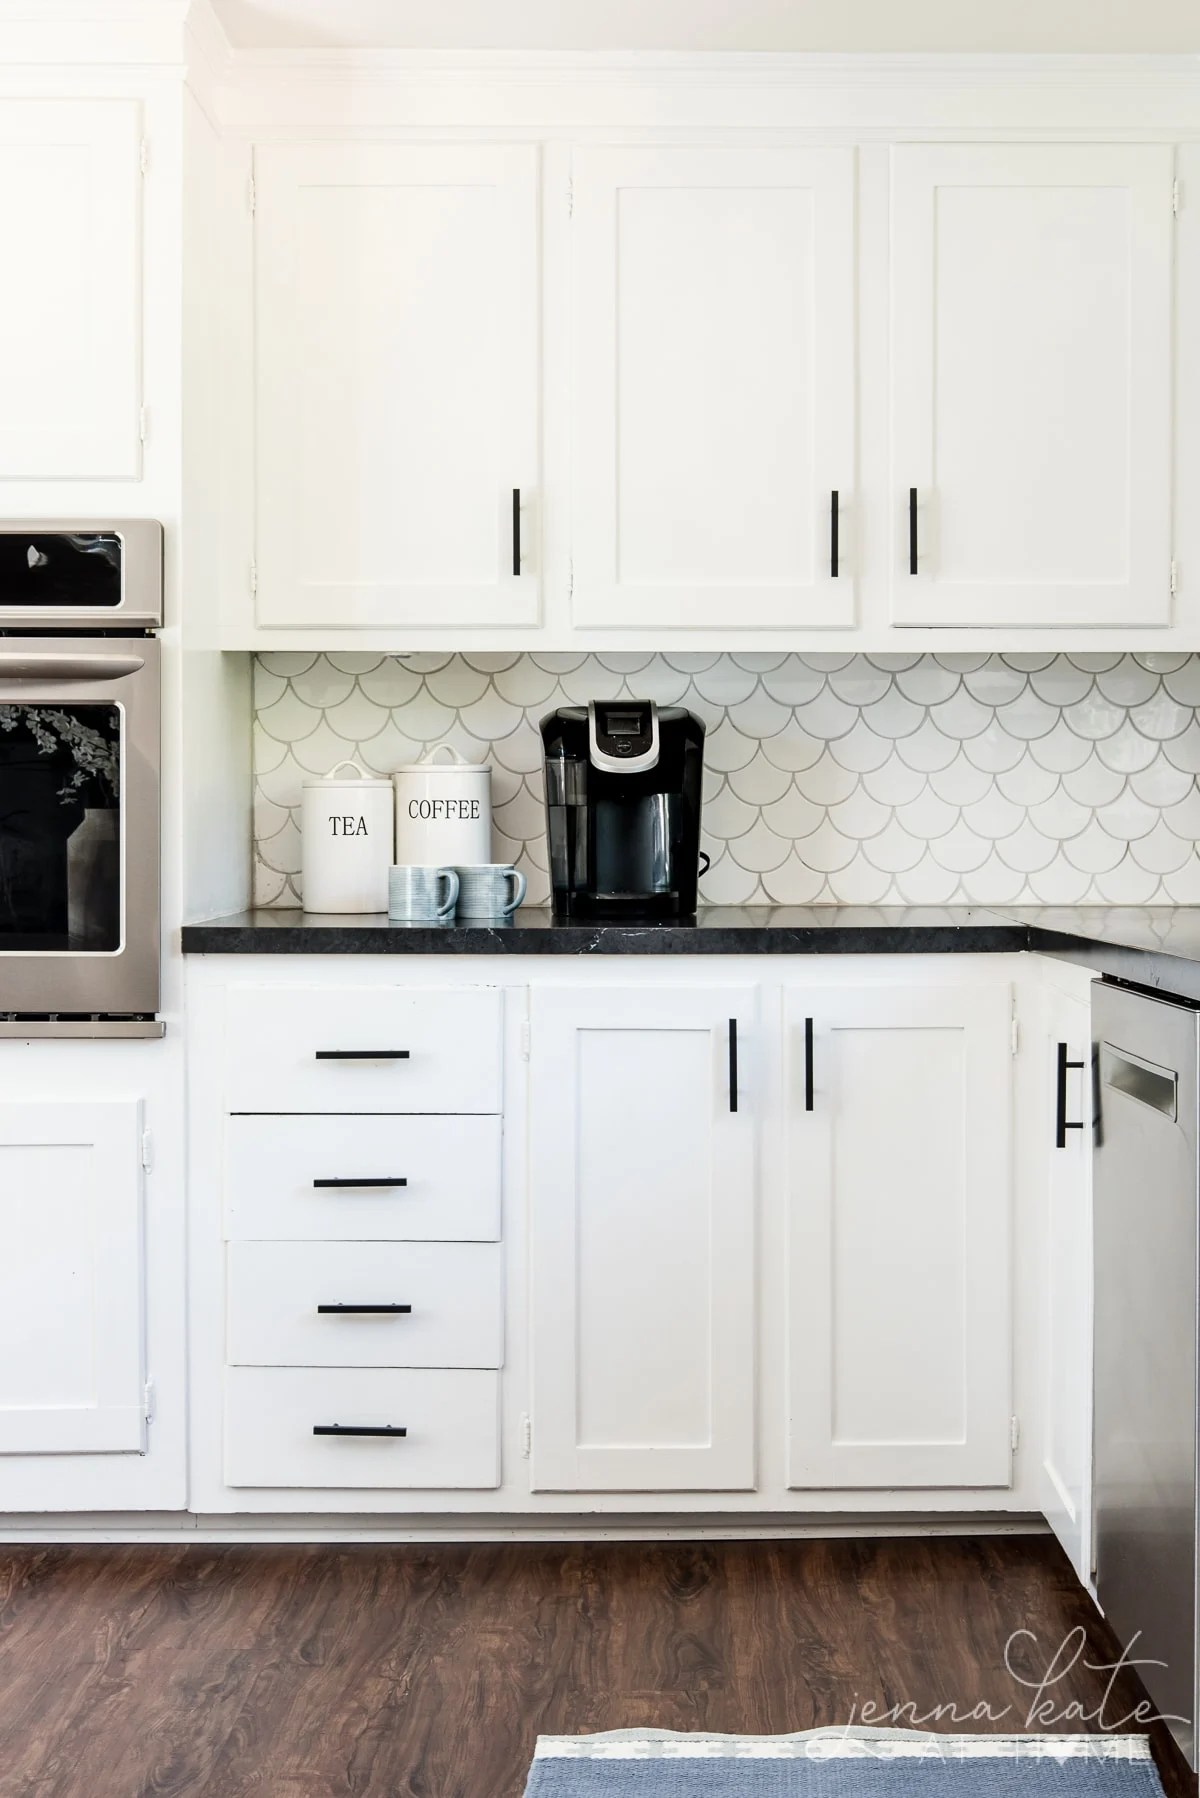 Matte black kitchen pulls on white shaker cabinets